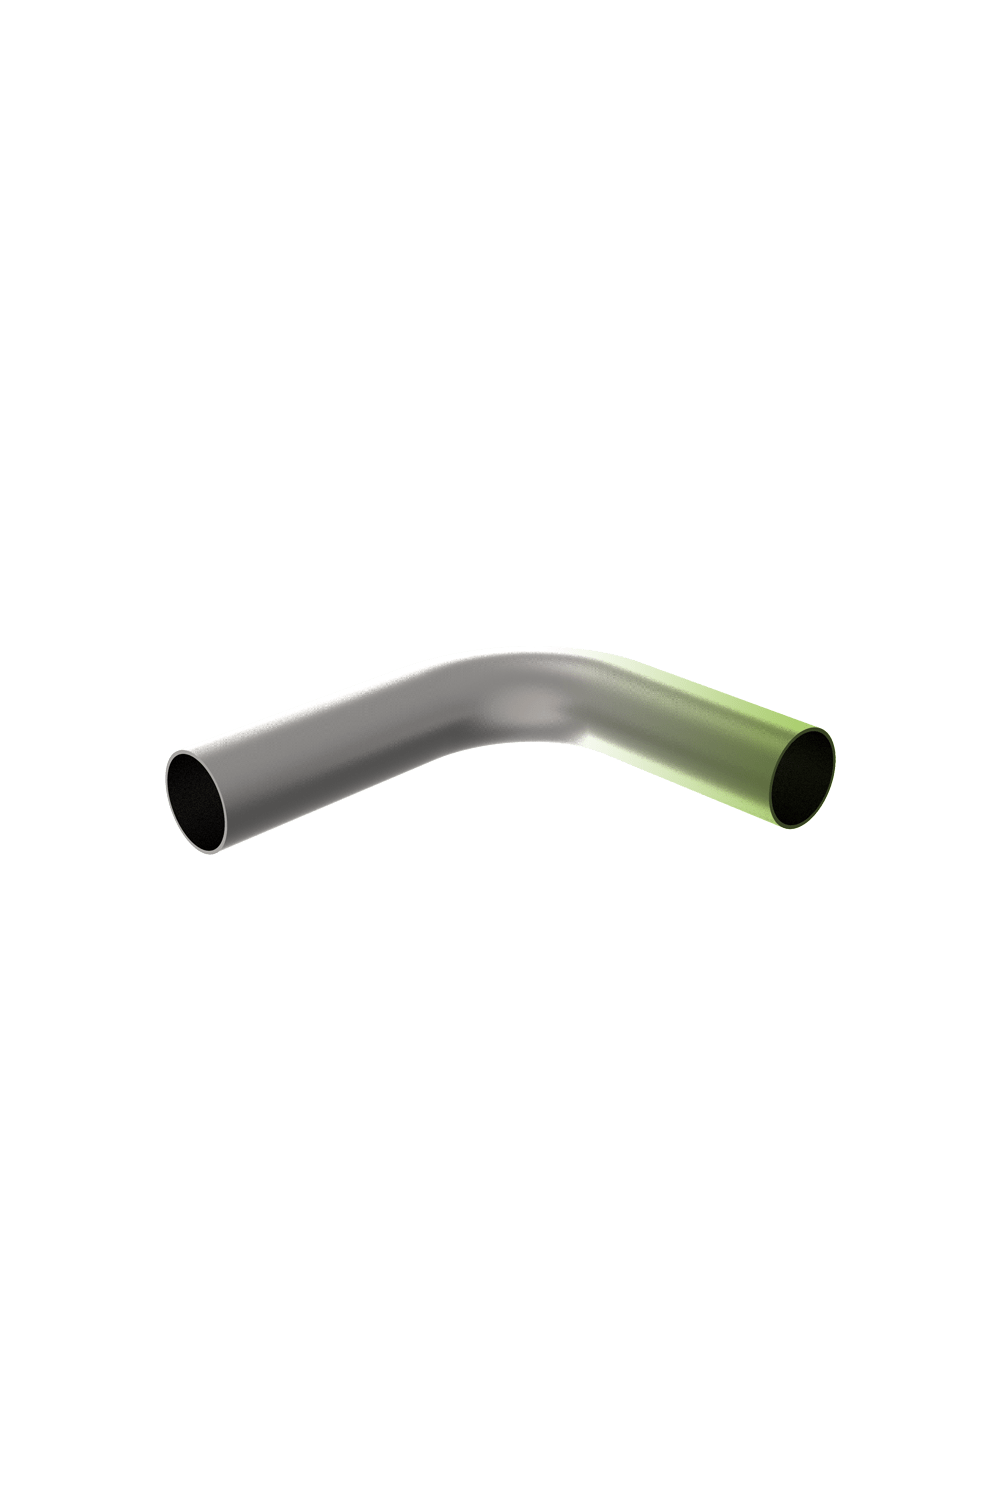 Mandrel Bending - Bend-tech Group